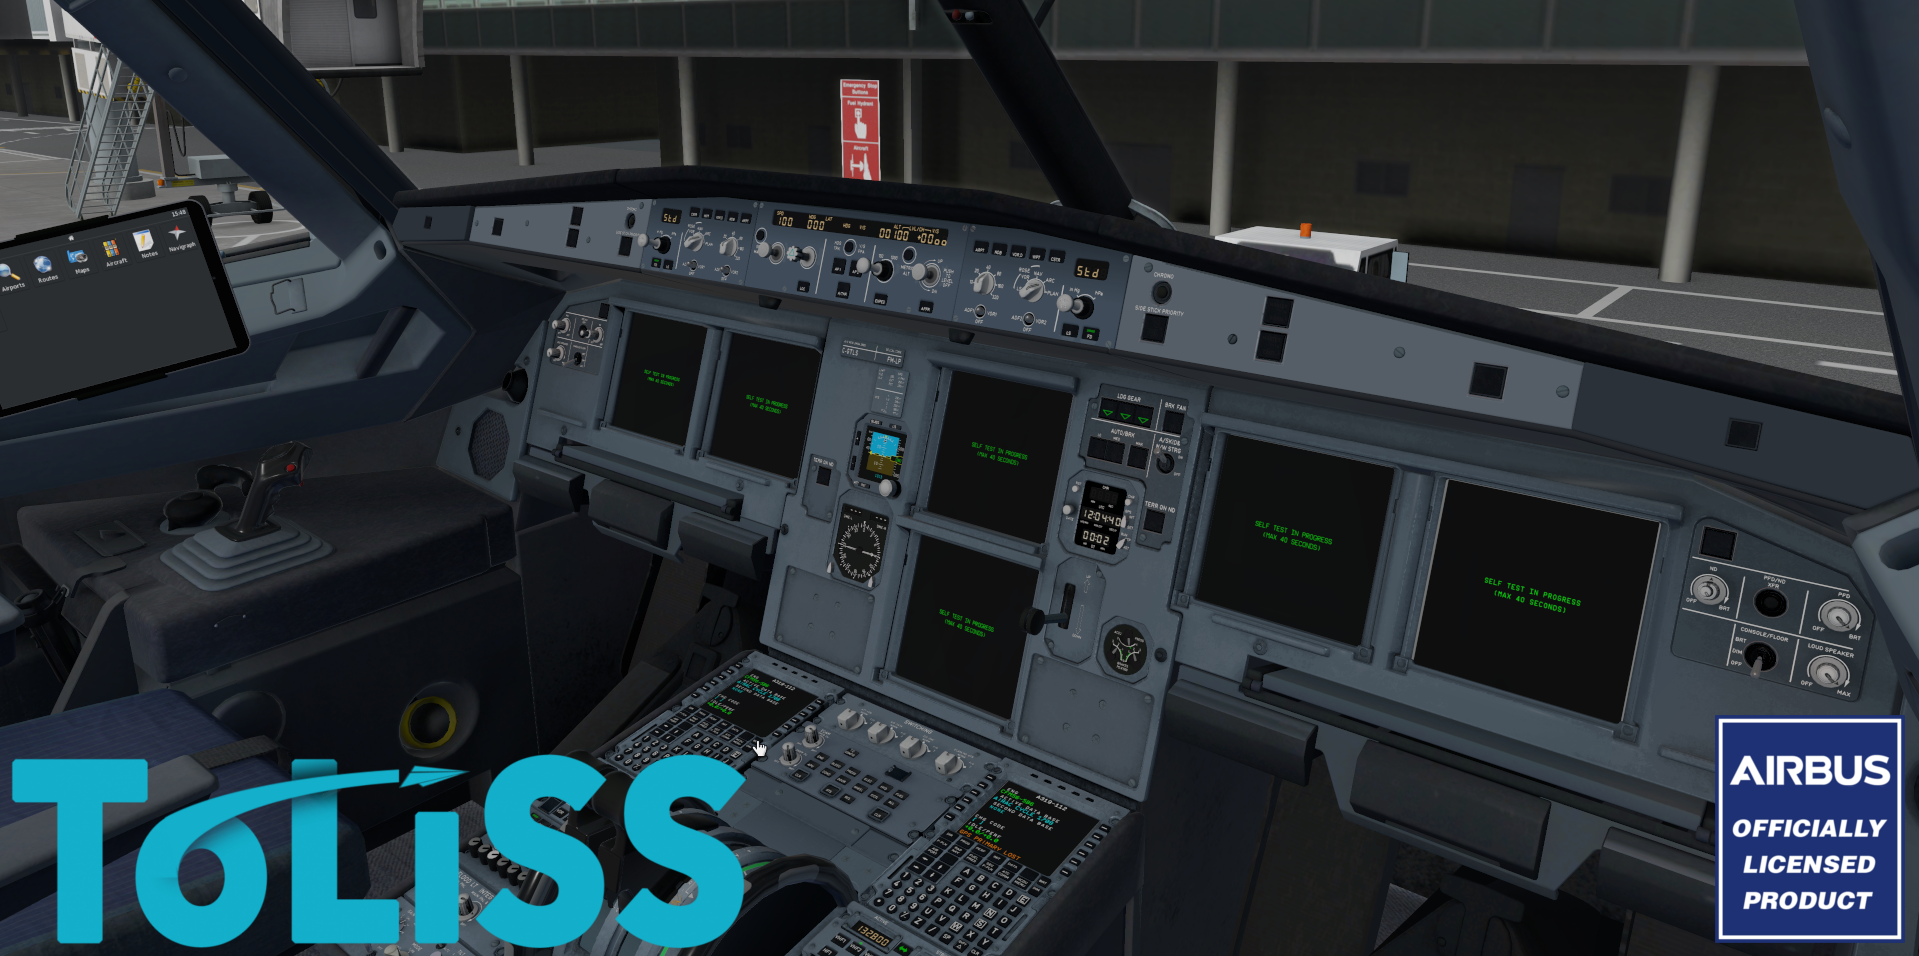 TOLISS INC - 319 X-PLANE 10/11, OFFICIALLY LICENSED BY AIRBUS